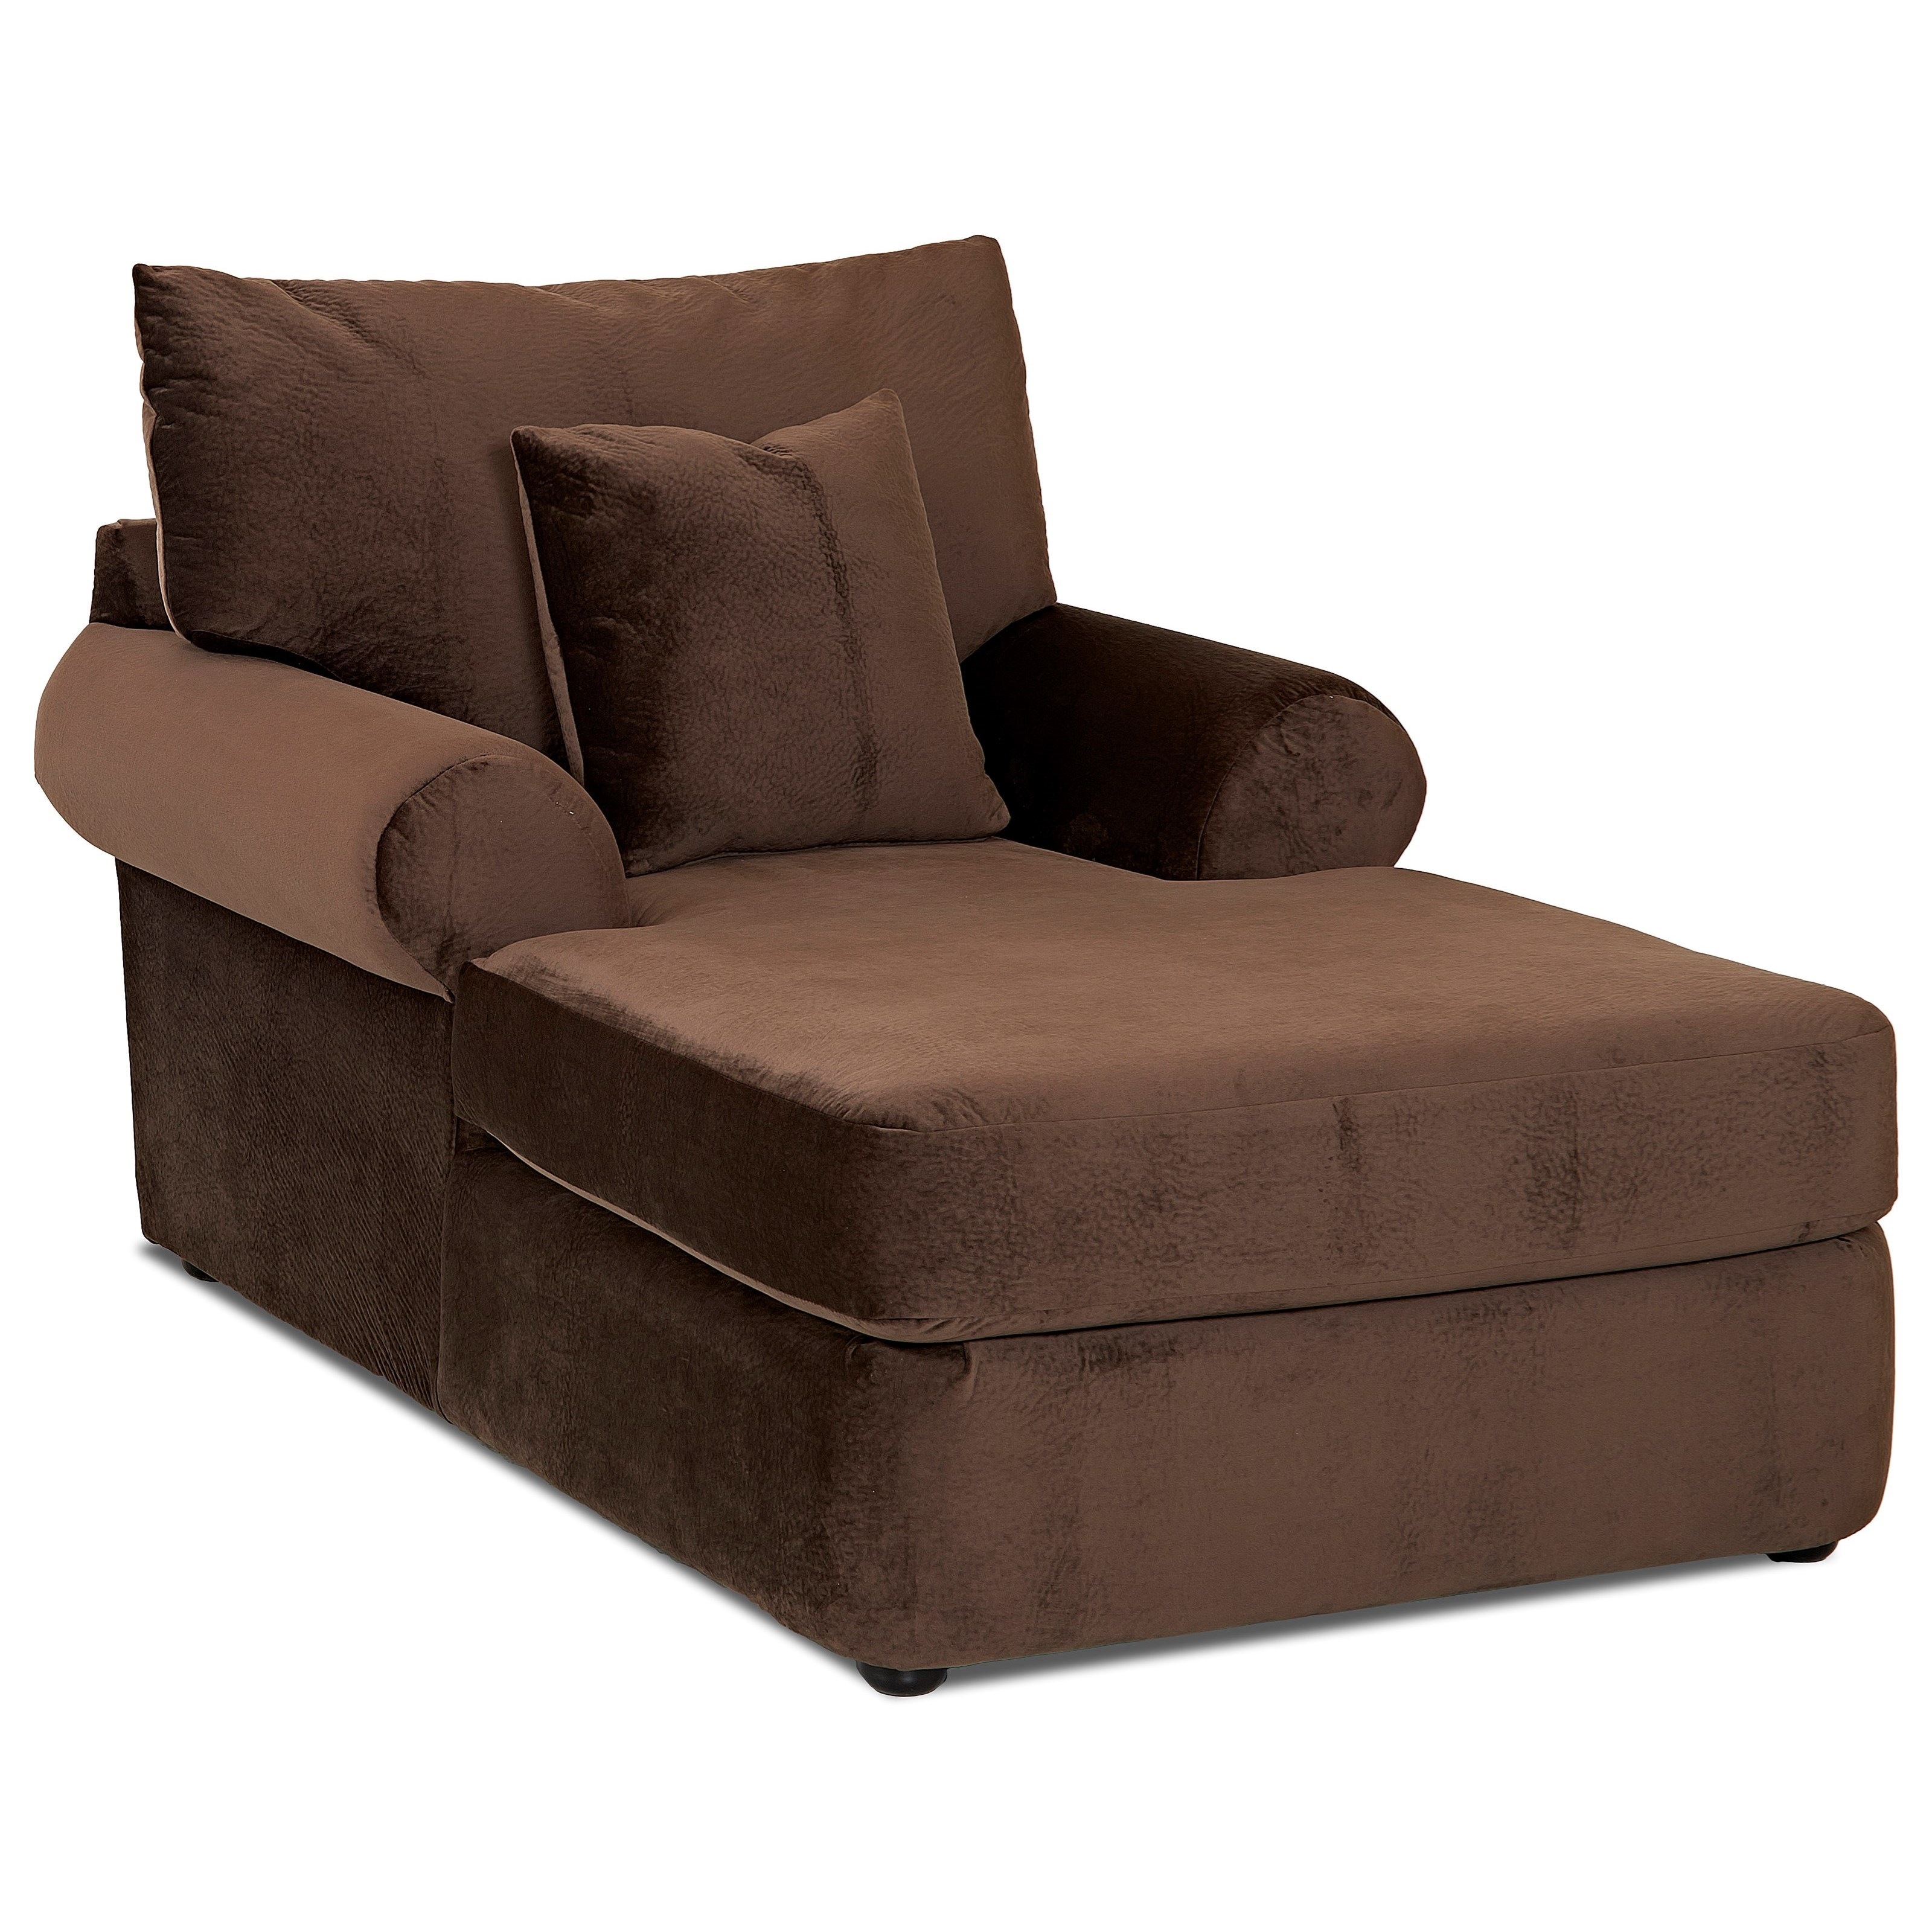 chaise lounge chair klaussner cora k41200 casual plush chaise lounge 10147